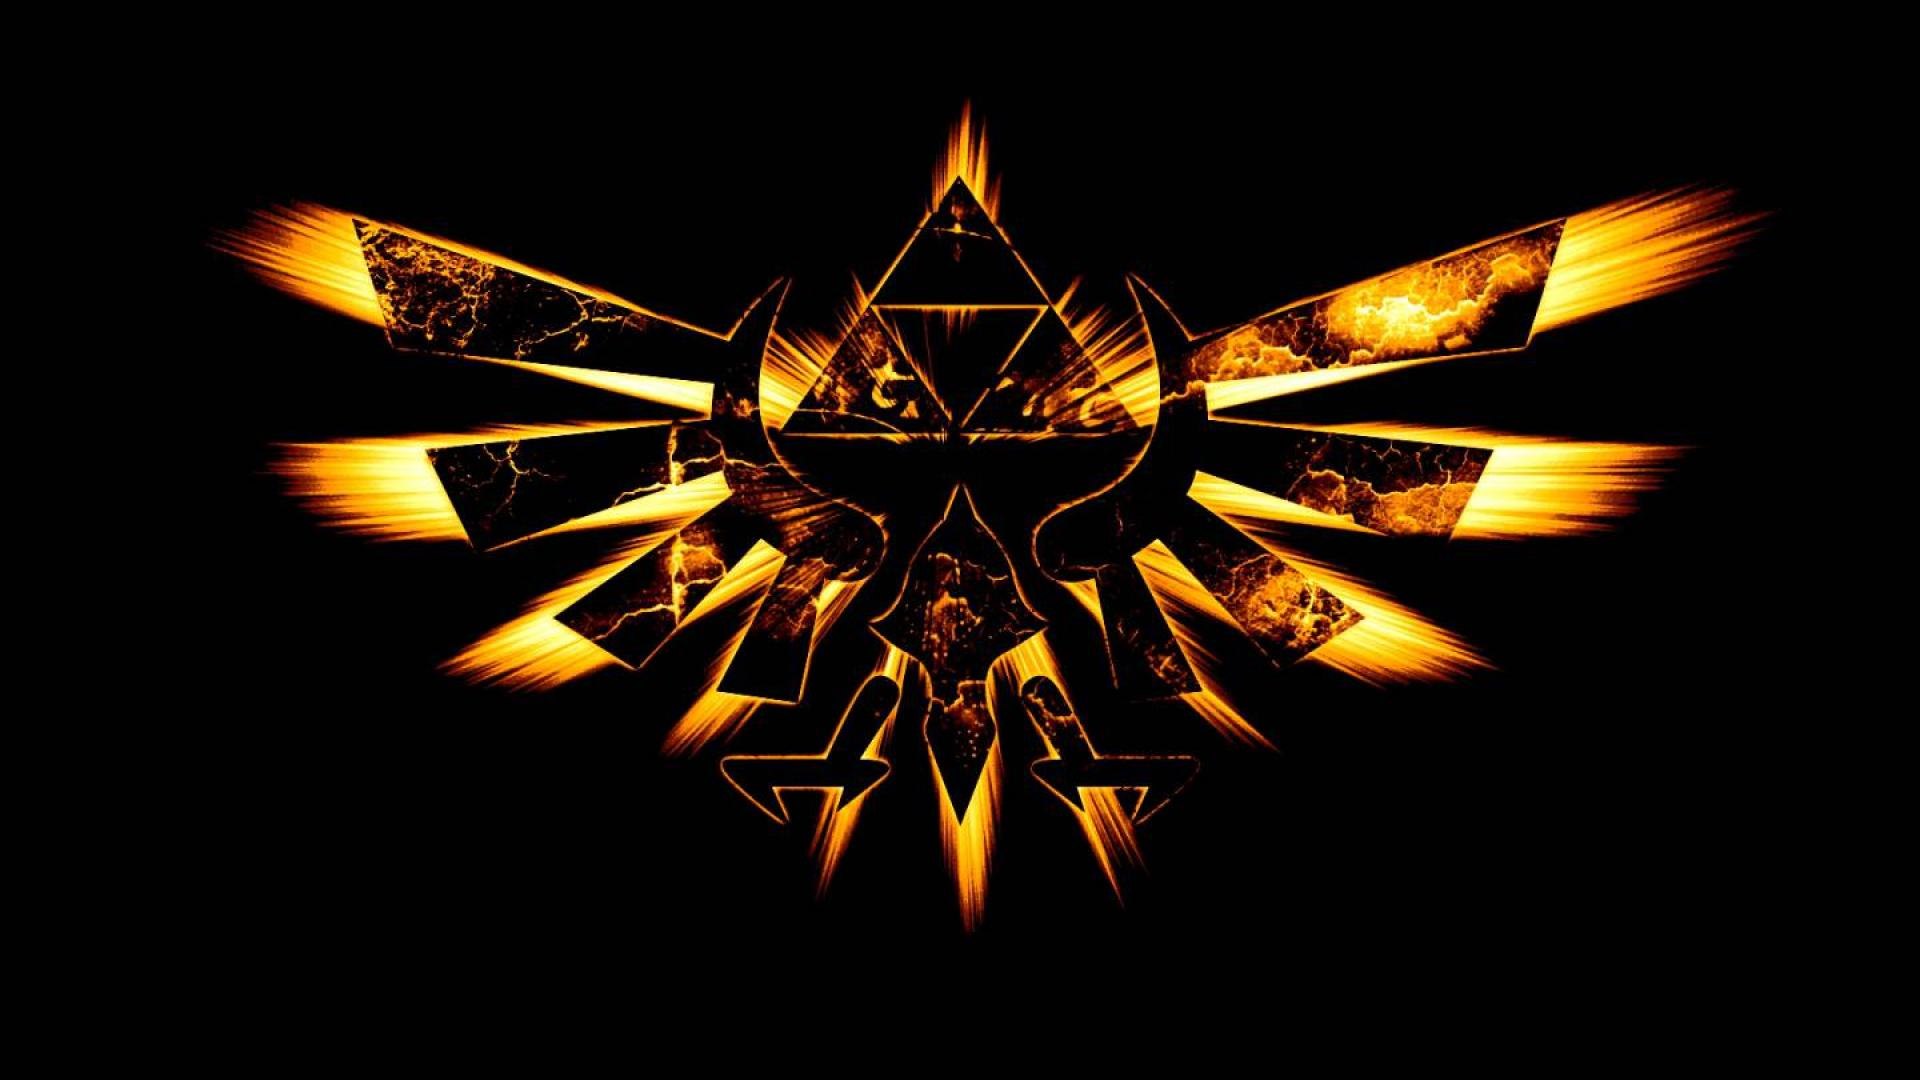 1920x1080px-Legend-Of-Zelda-Dark-Background-wallpaper-wp380960